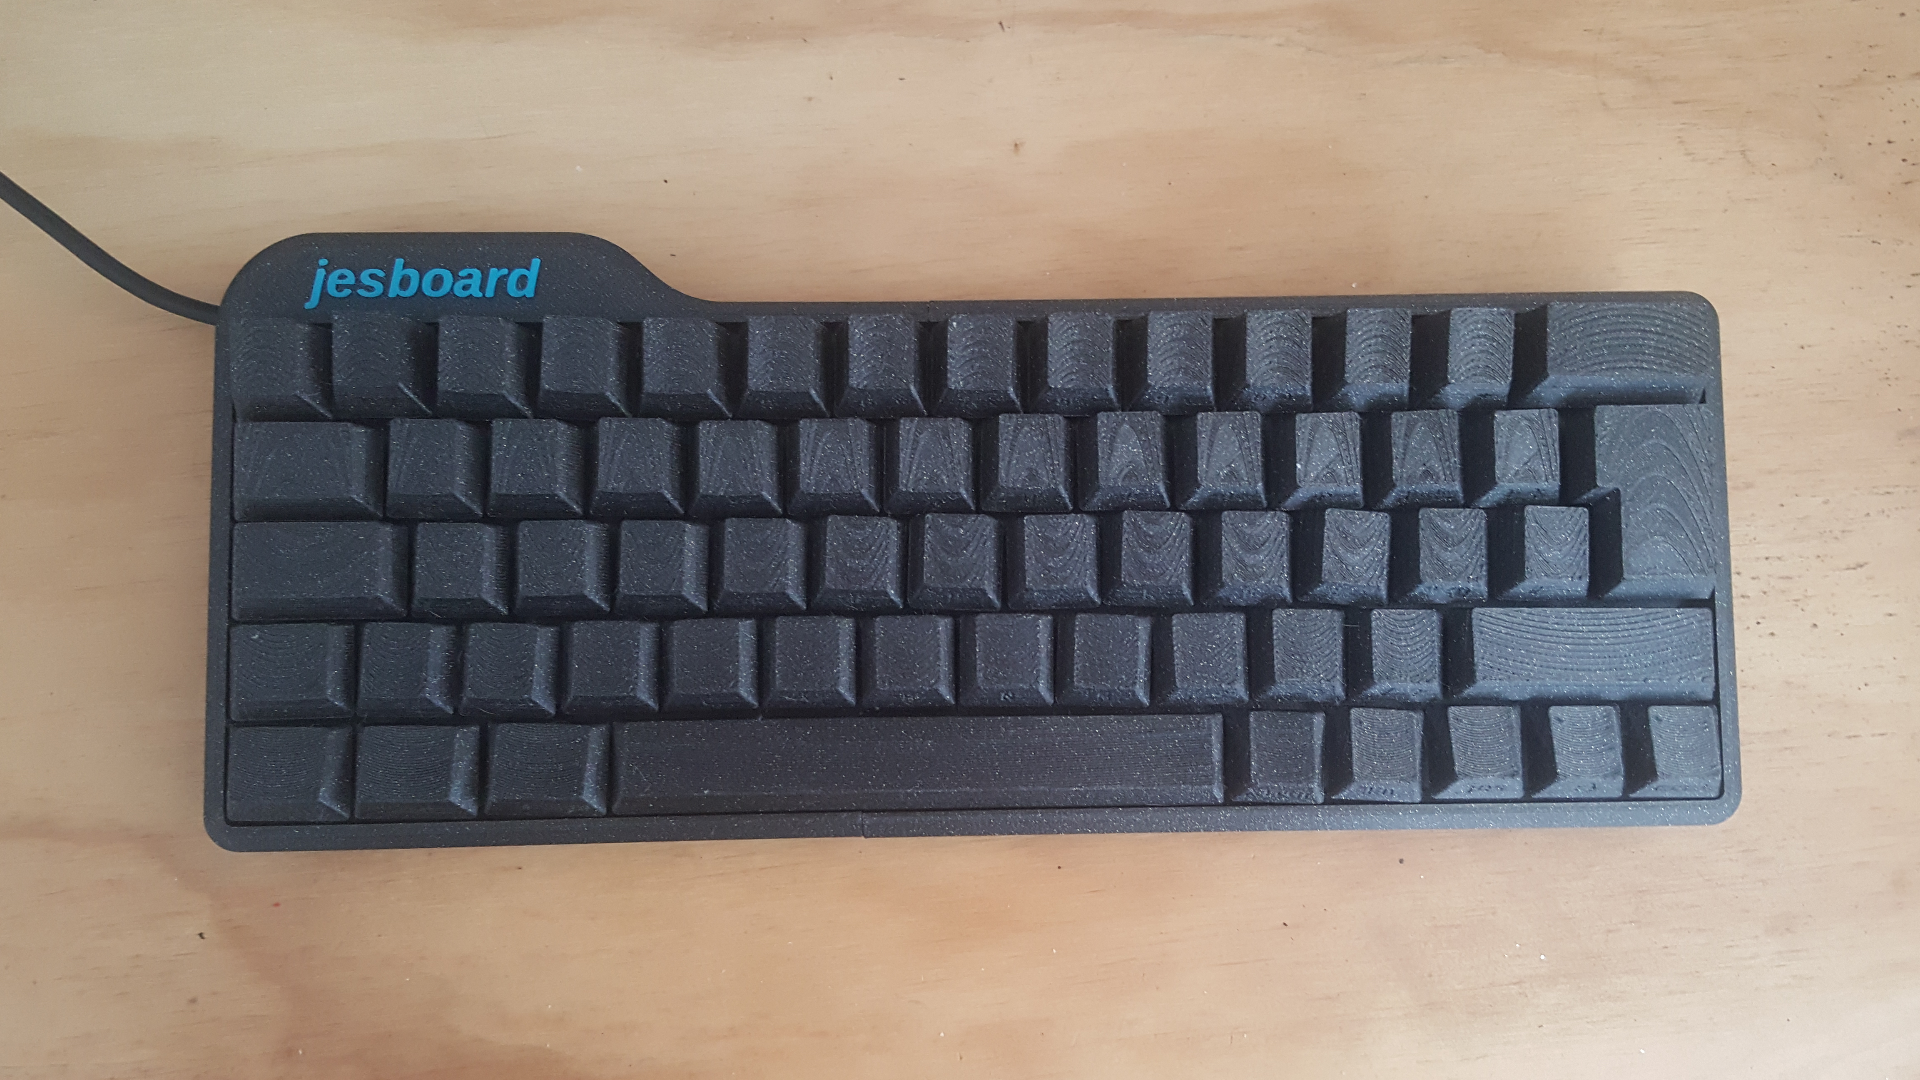 You can 3D print your own gaming keyboard for $40, but you probably shouldn't